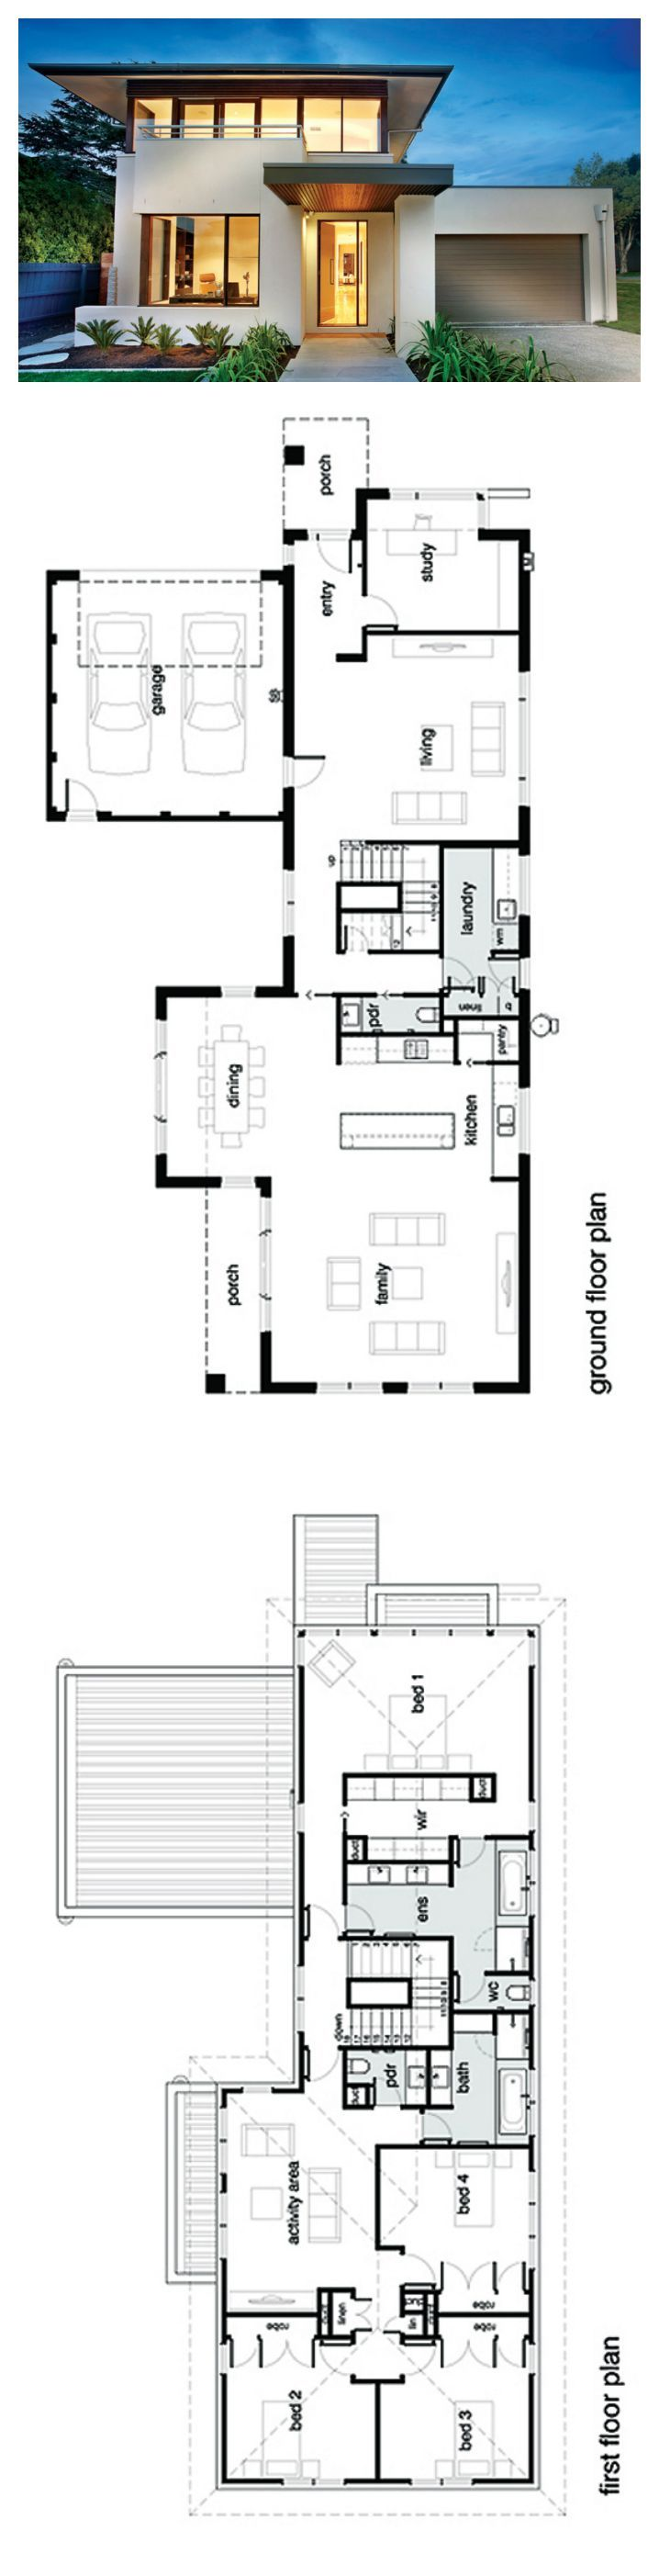 Best 25 Modern house plans ideas on Pinterest